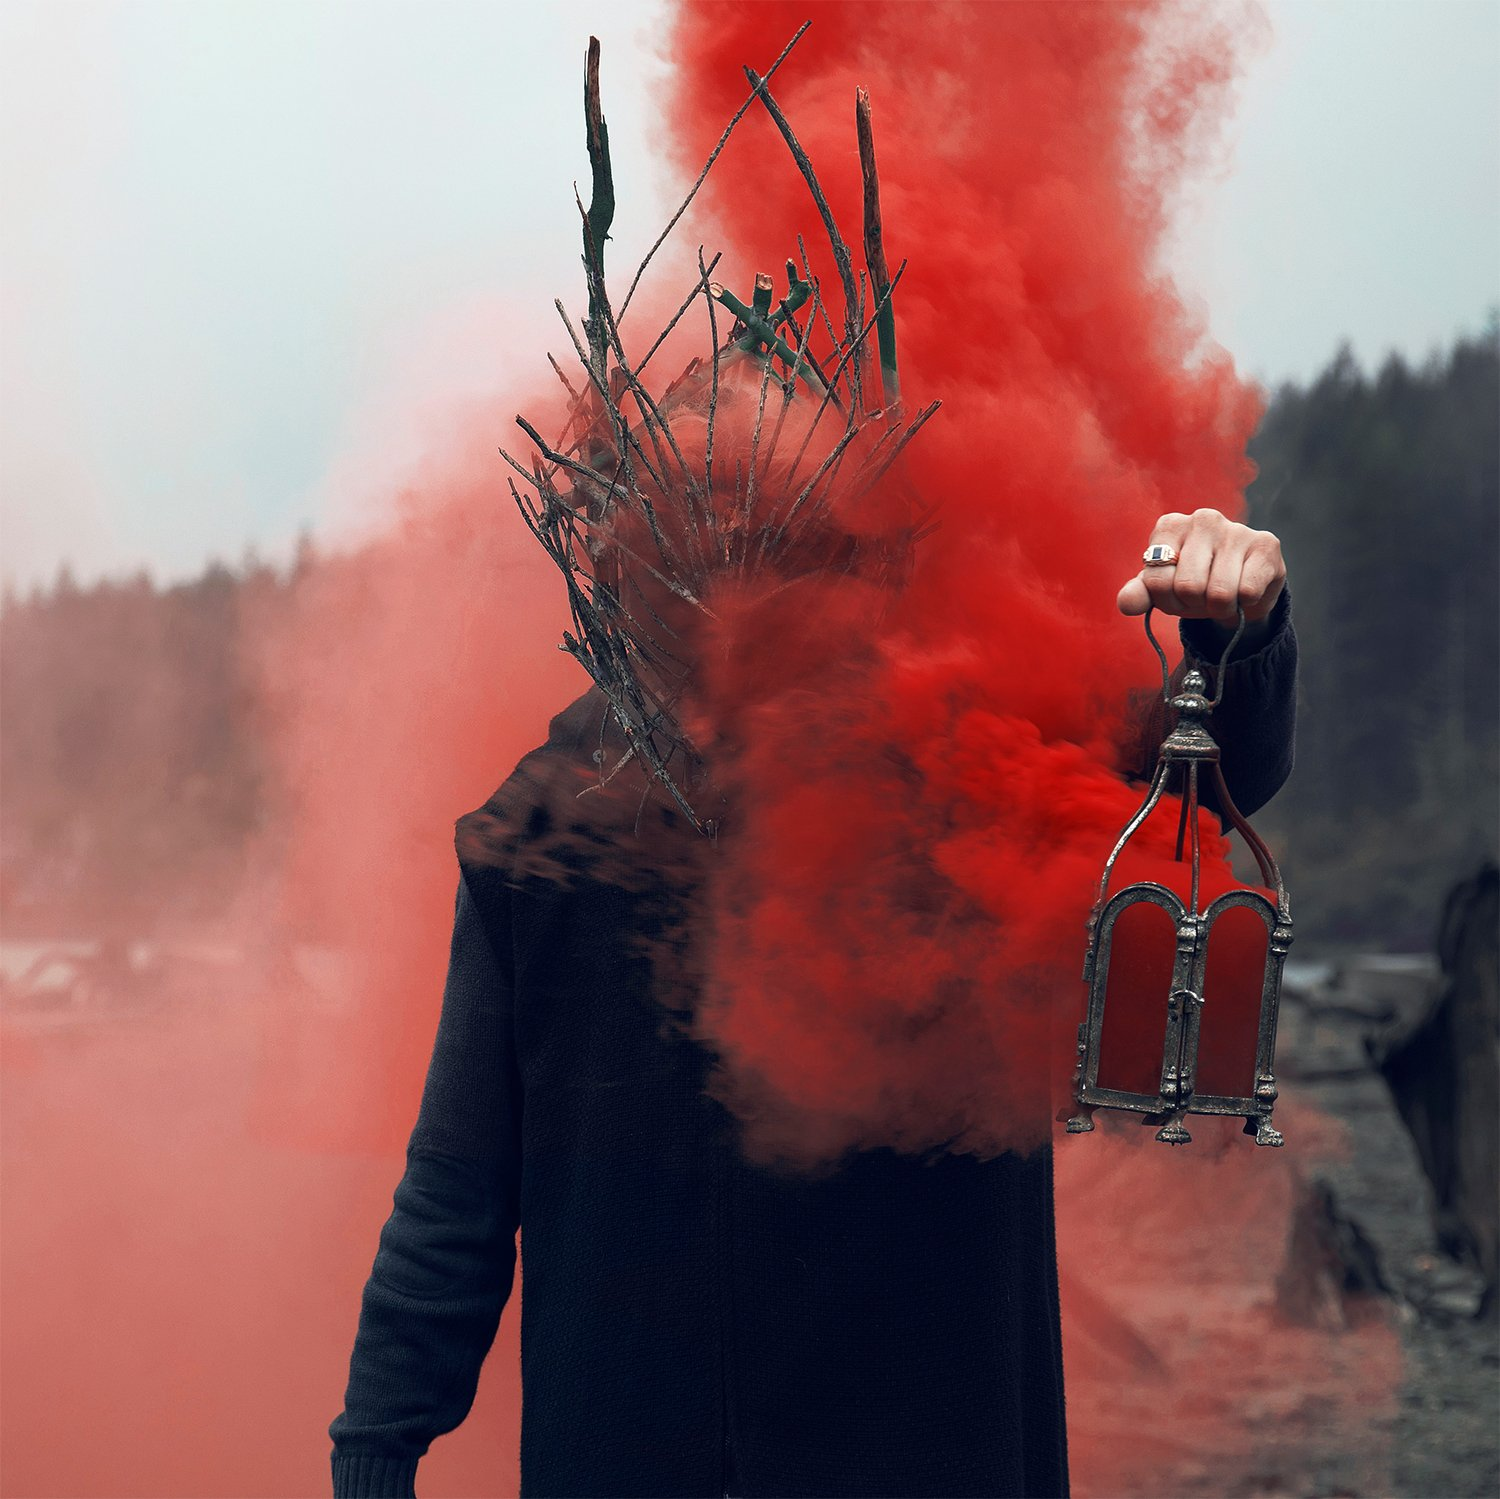 red smoke, portrait photography